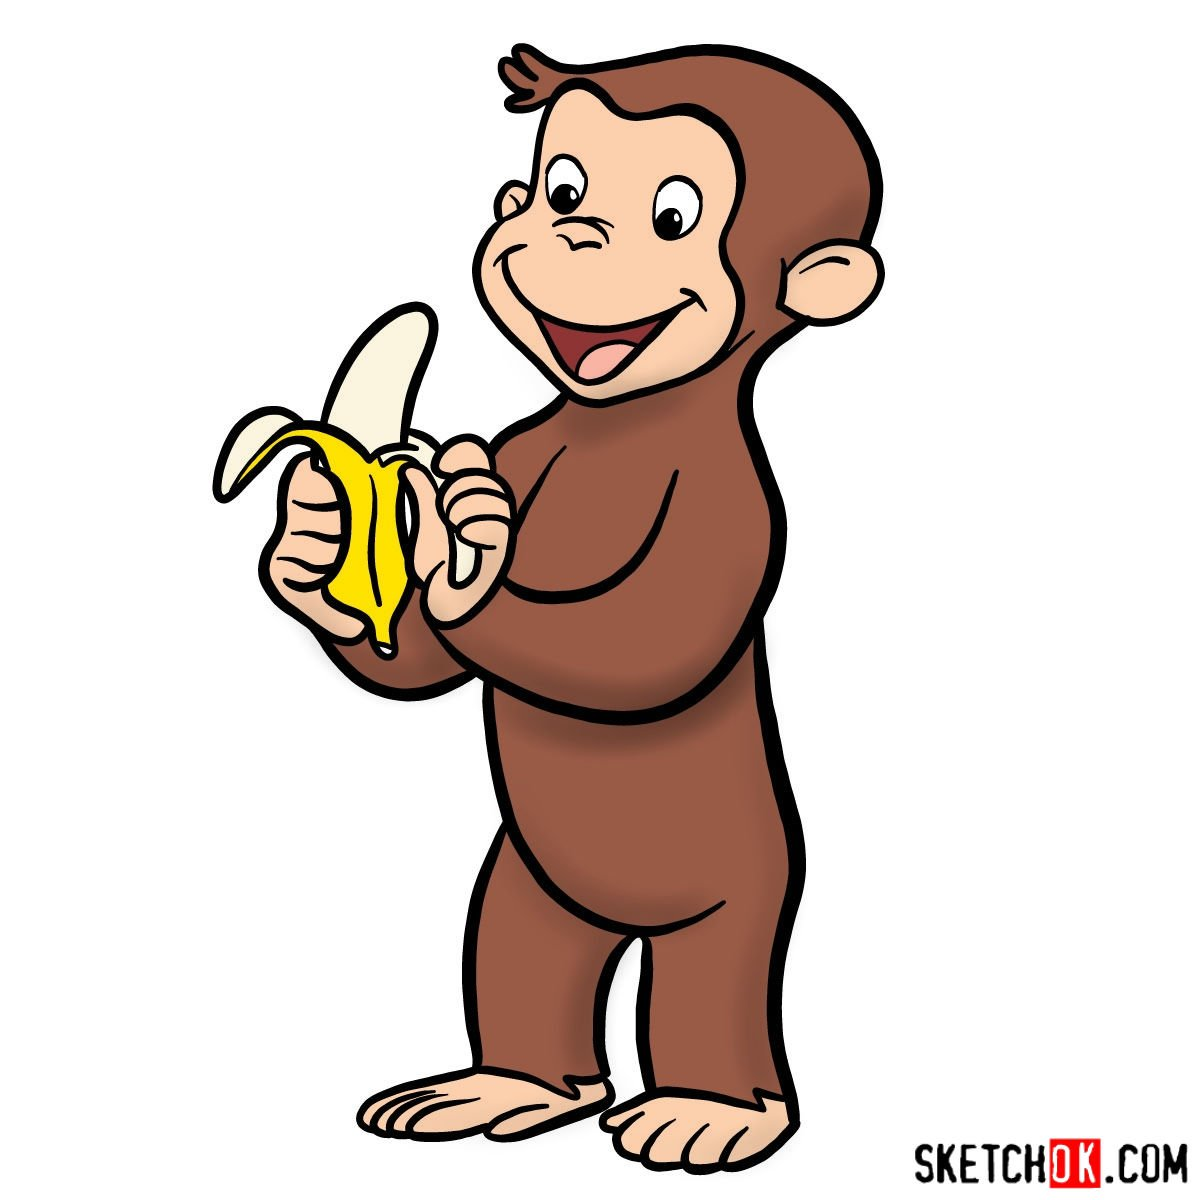 How to draw Curious George - coloring